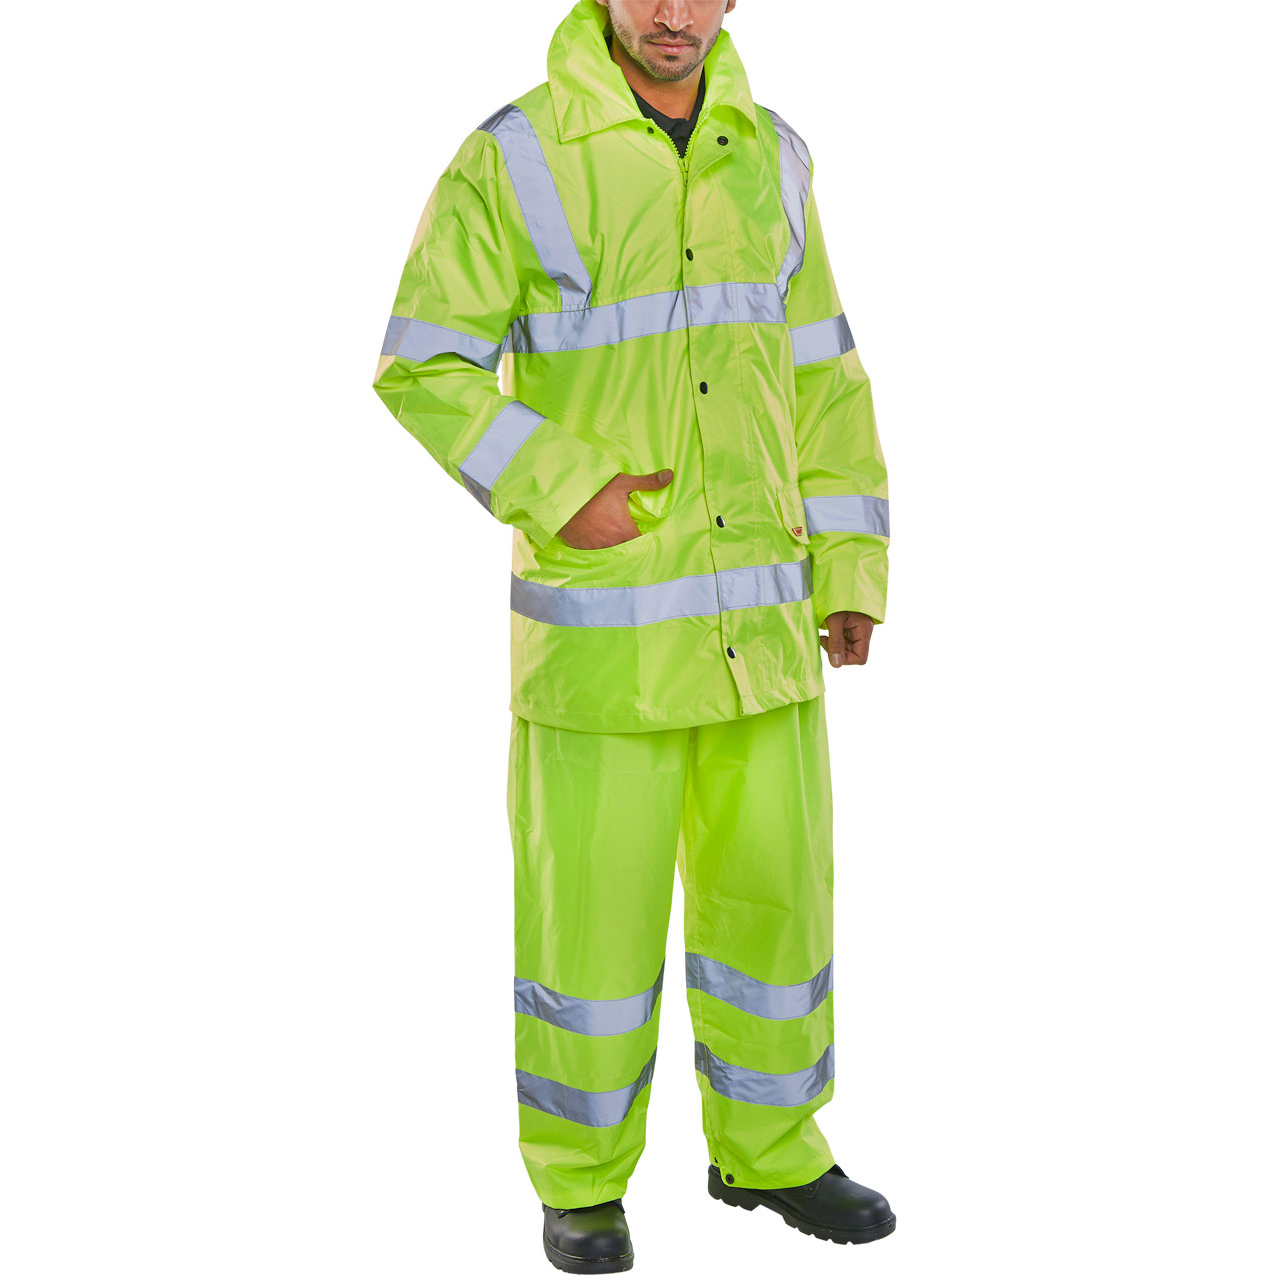 BSeen Hi-Vis L/Wt Suit Jkt/Trs EN ISO 20471 EN 343 2XL Saturn Yellow Ref TS8SYXXL Up to 3 Day Leadtime